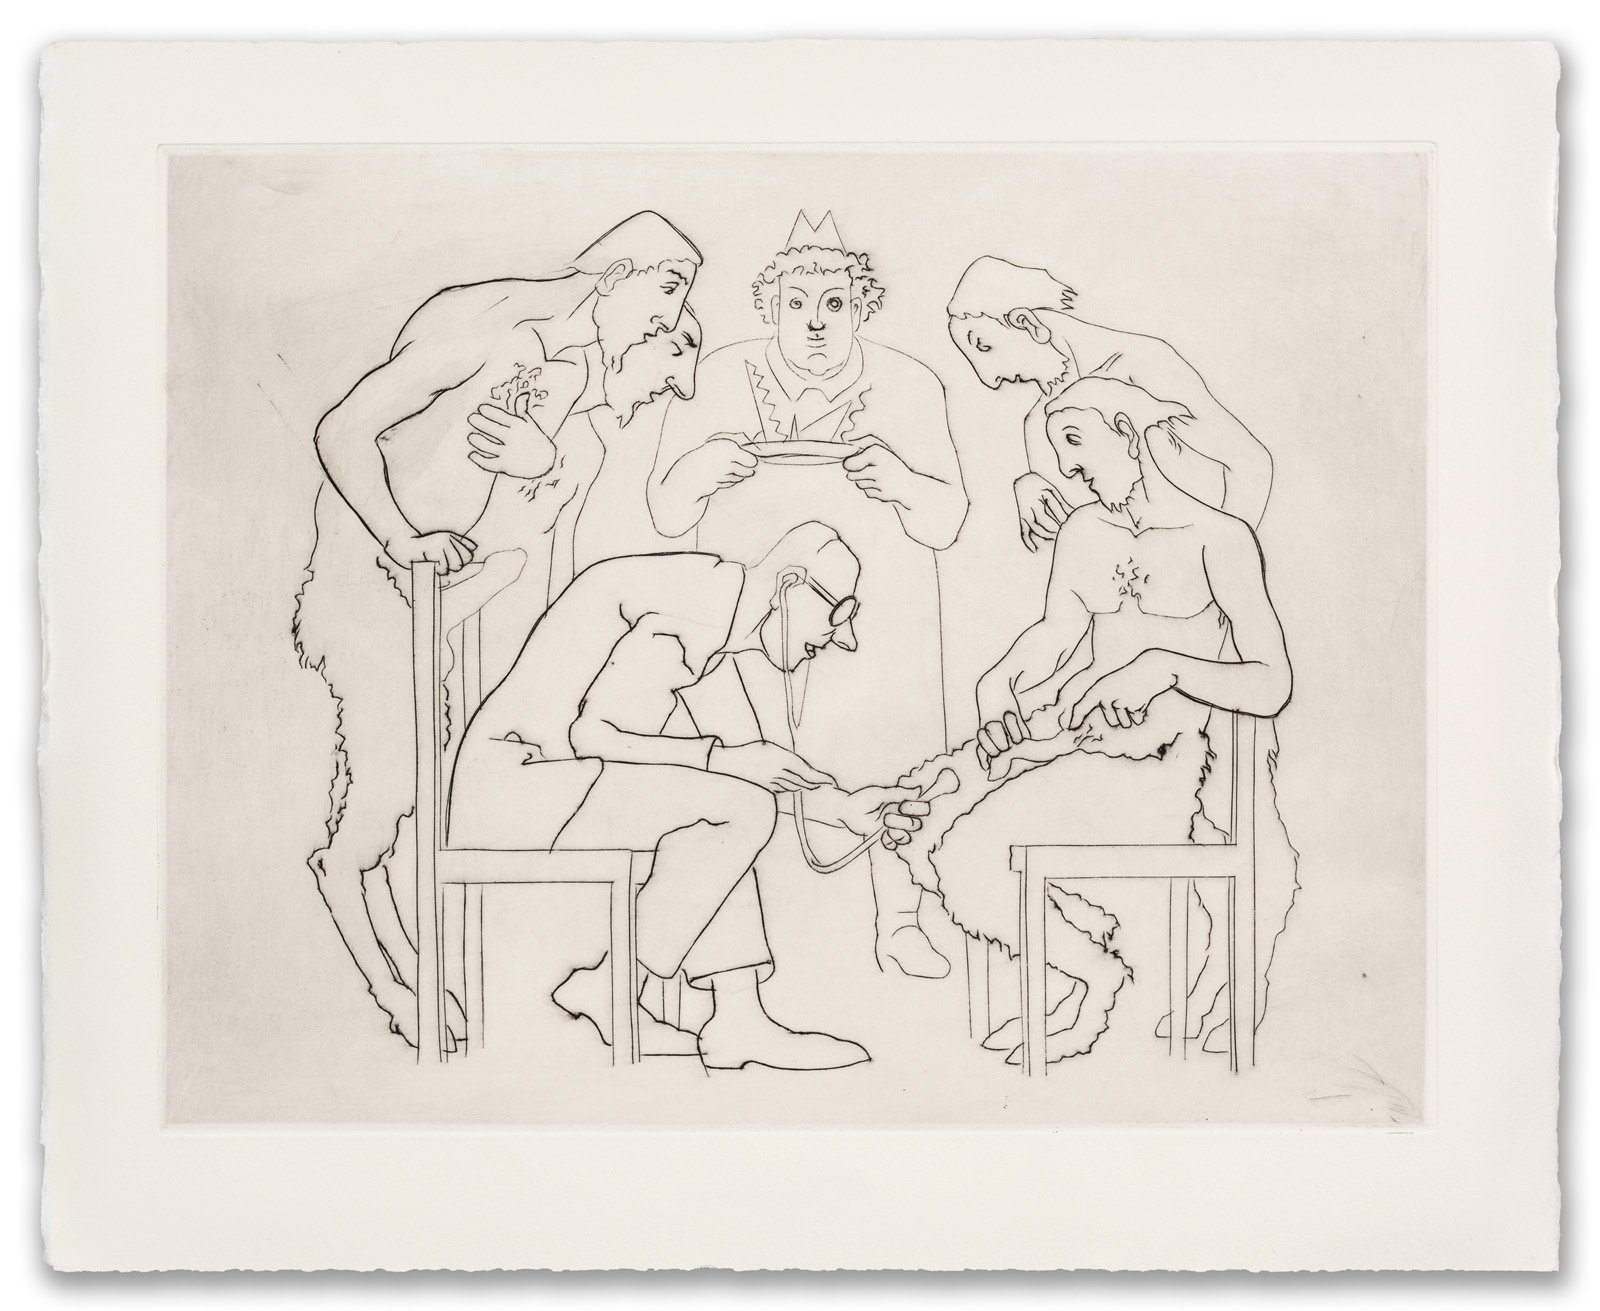 Francis West, (British 1936-2015), The Surgery, c.1999 (2017 Edition).